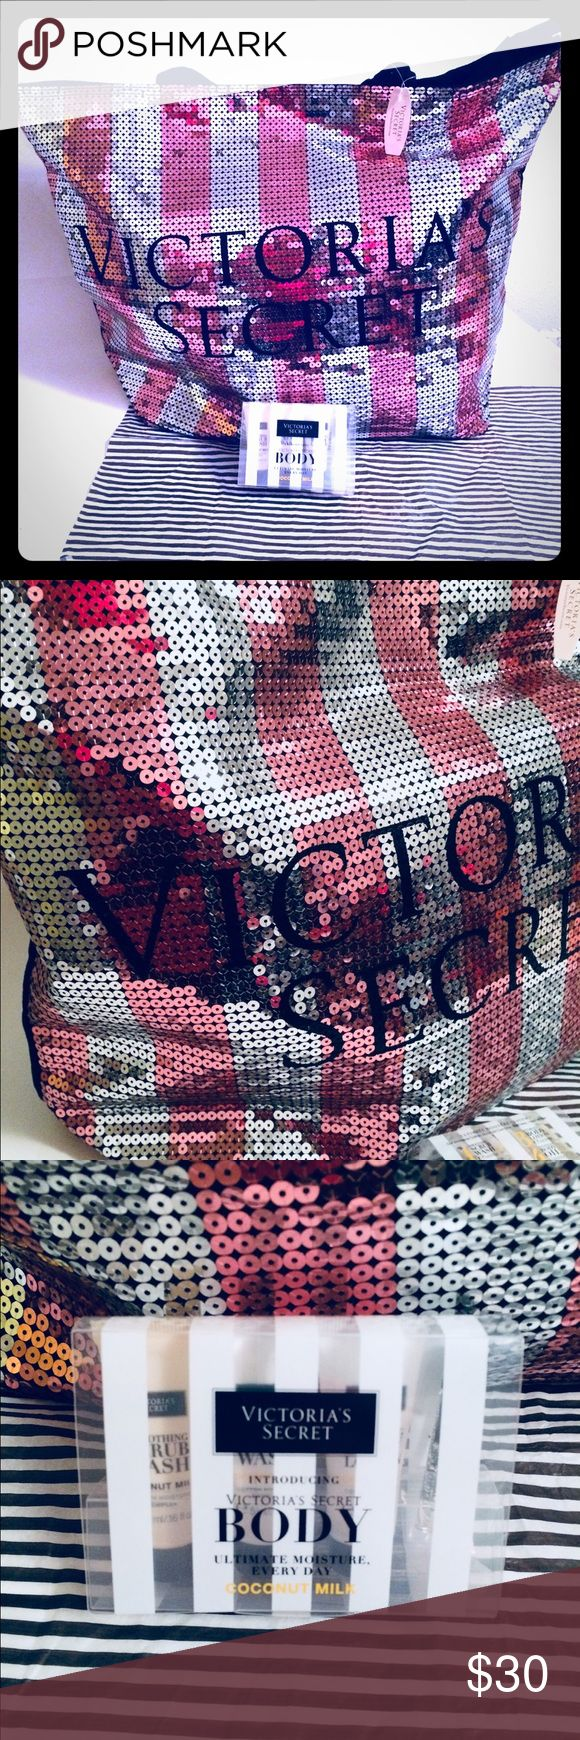 "Victoria's Secret Sequin Tote Bag VICTORIA'S SECRET sequin tote measures 21"" wide / 15"" height  New with tags. Victoria's Secret Body Moisture System - smoothing scrub wash, ultra rich cream wash, hydrating body lotion & weightless body oil.  Colors pink and silver exterior and black interior. Victoria's Secret Bags Totes"